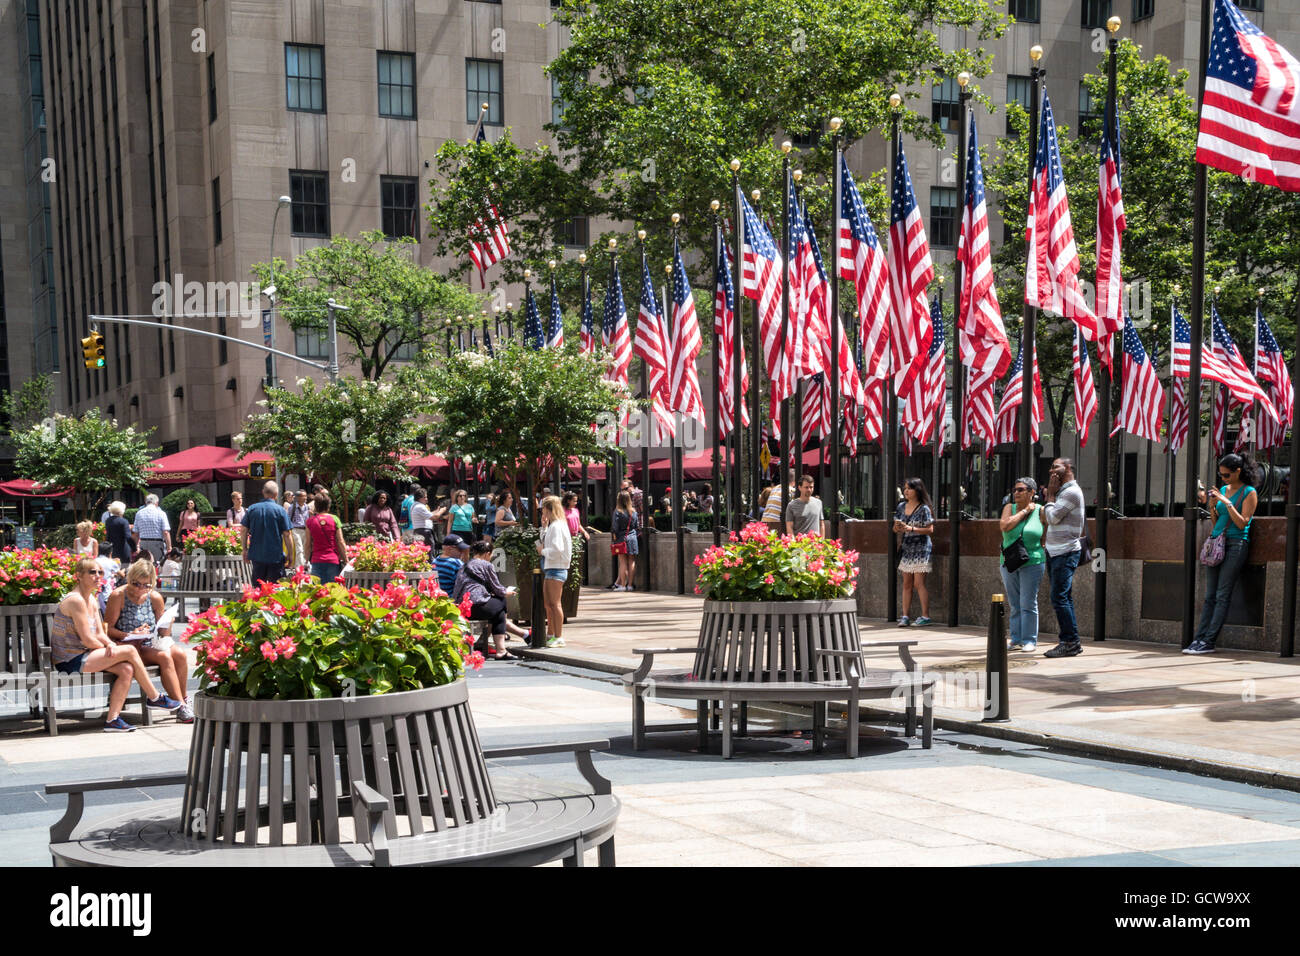 Tourists on Round benches and American Flags at Rockefeller Center ...